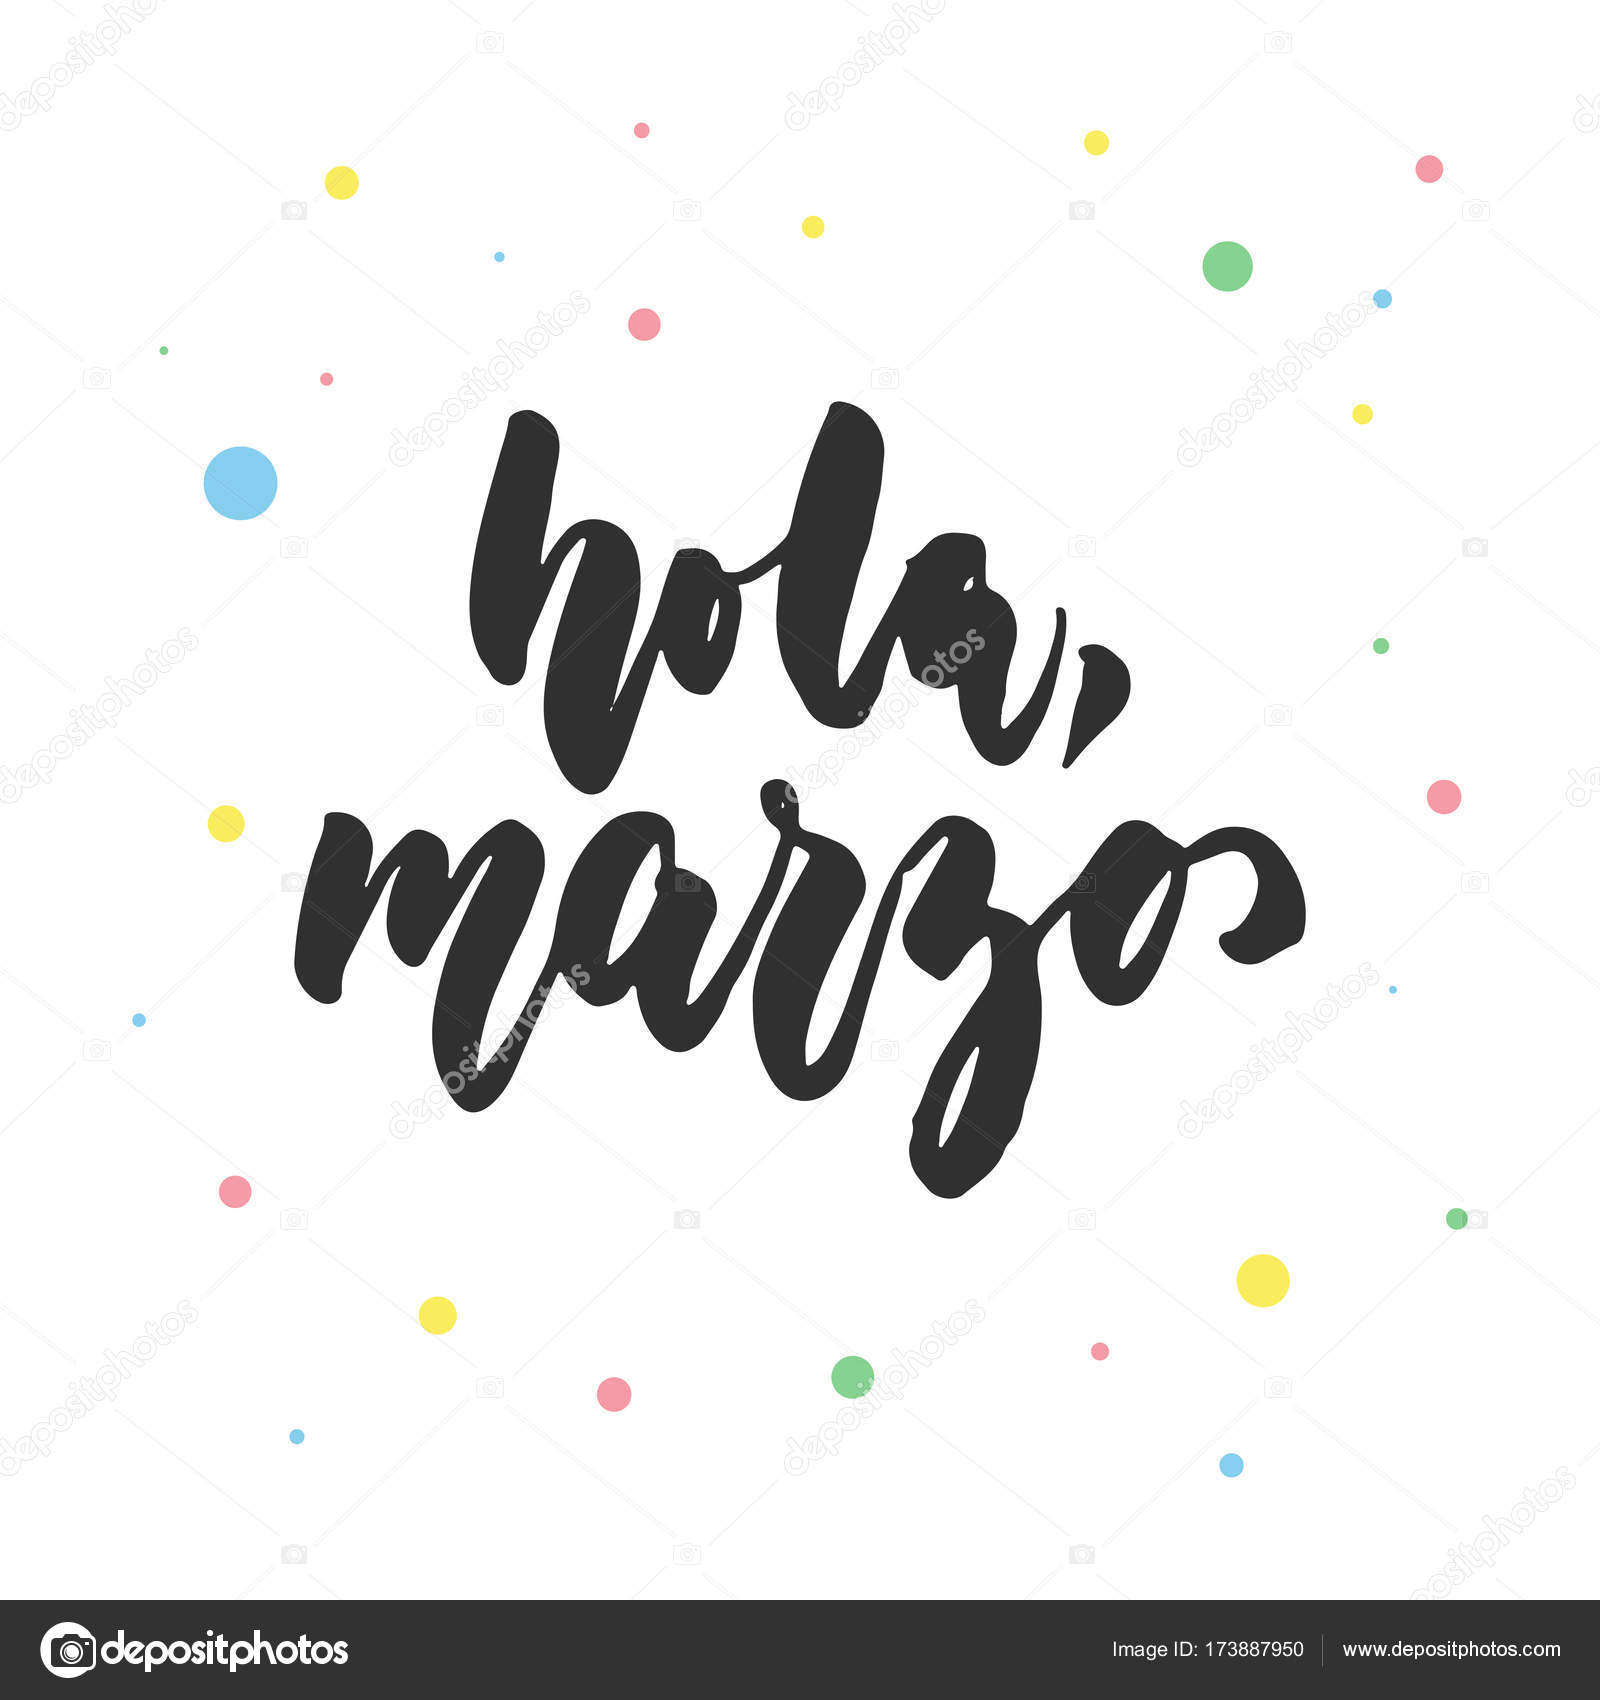 Hola Marzo O March In Spanish Hand Drawn Latin Lettering Quote With